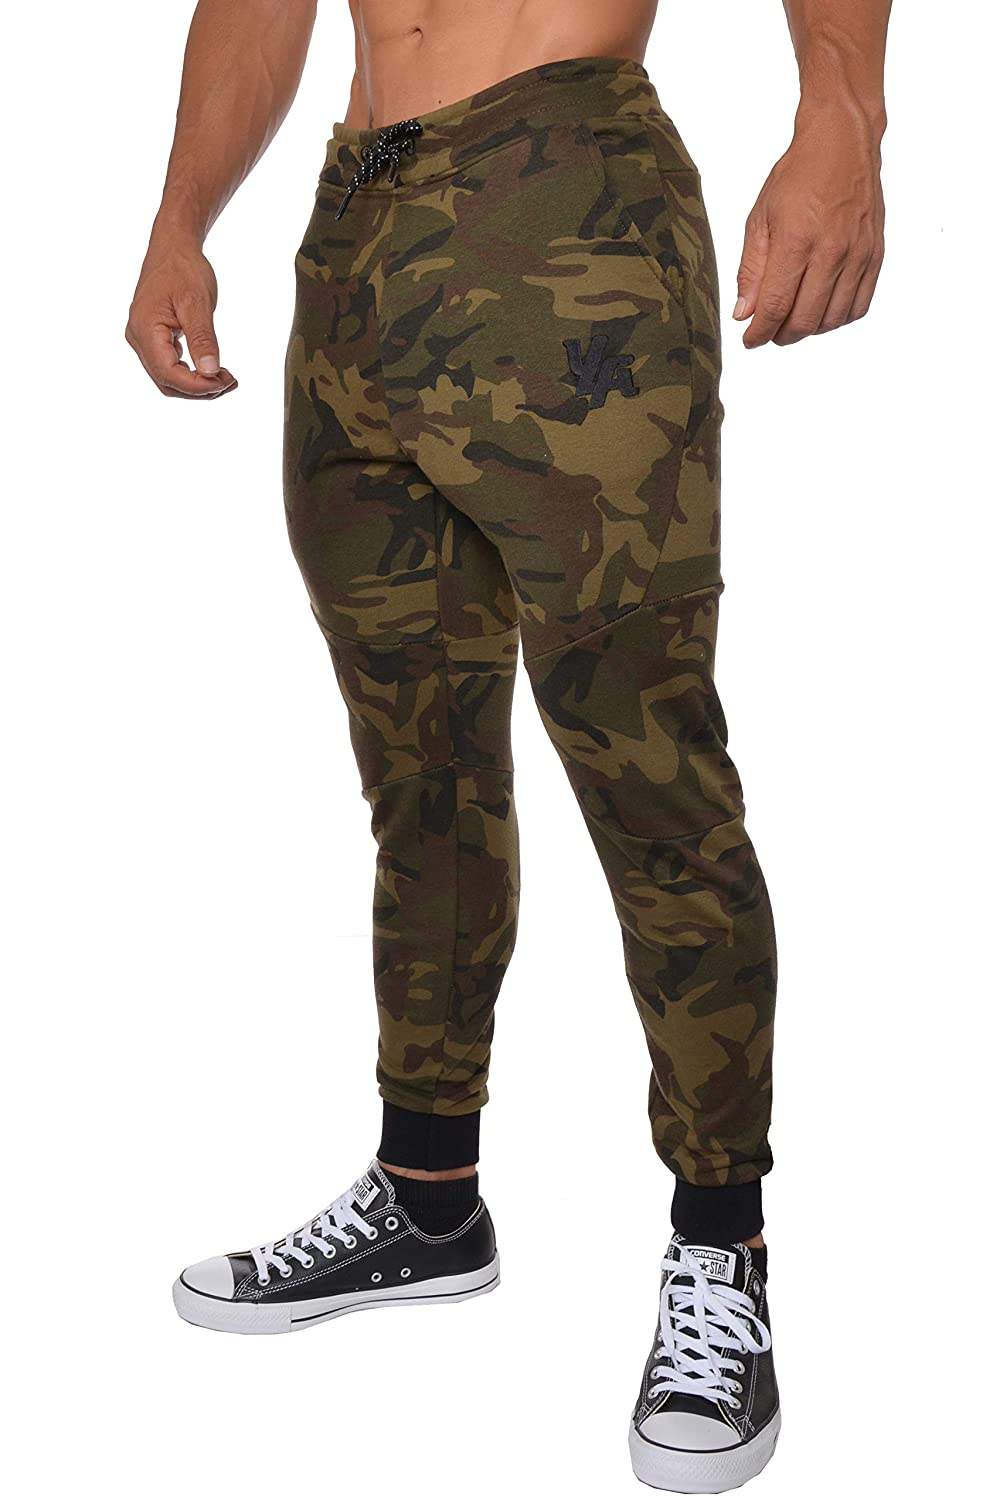 c1a84ad4c6123f YoungLA French Terry Cotton Sweatpants Jogger Pants at Amazon Men's Clothing  store: